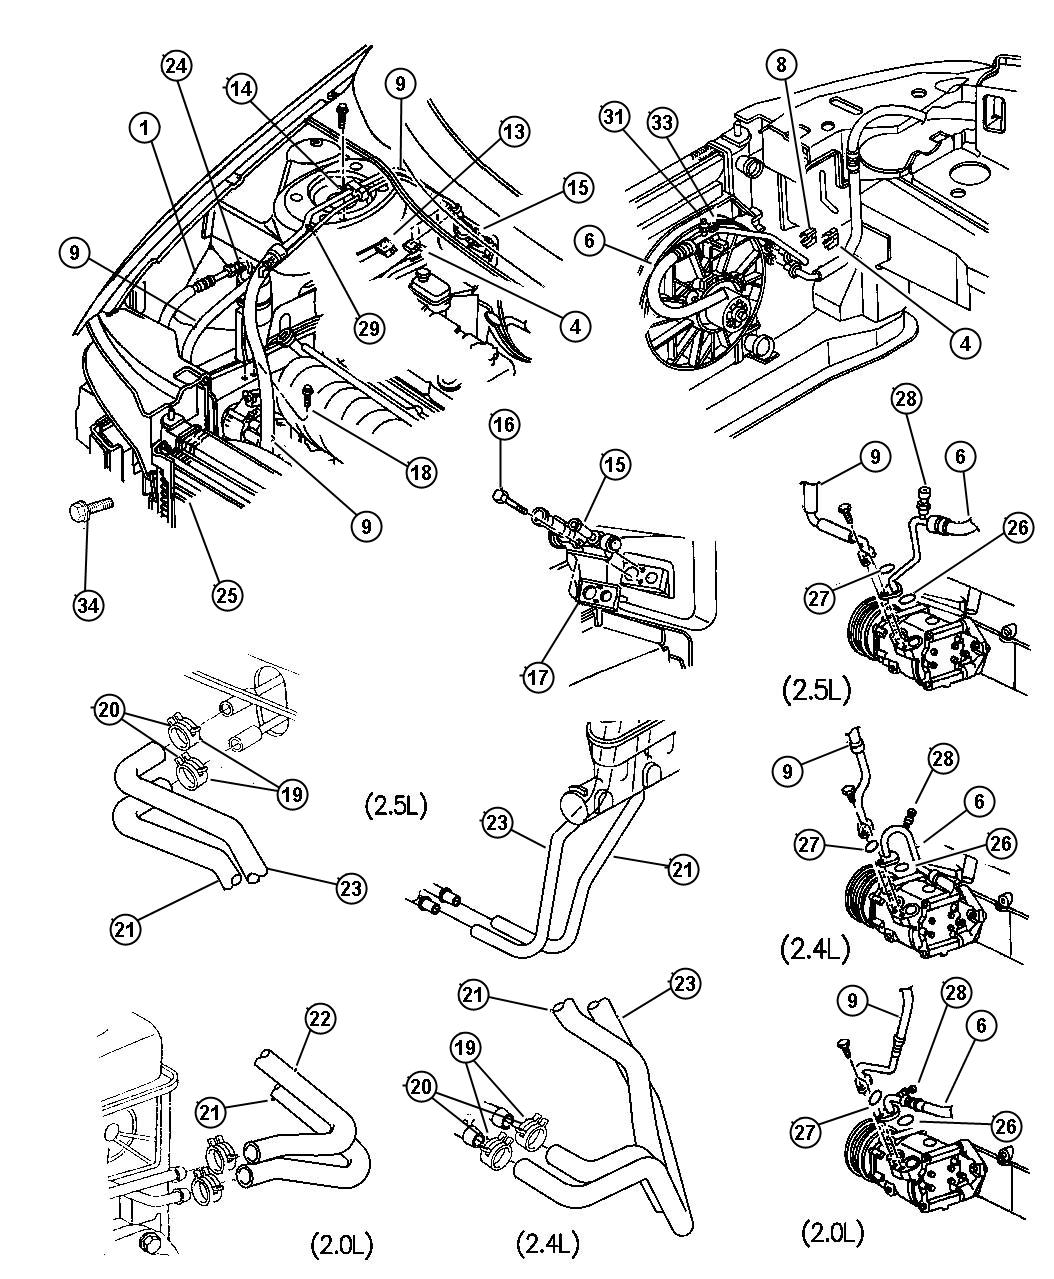 tune up 2005 kia sedona engine diagram html